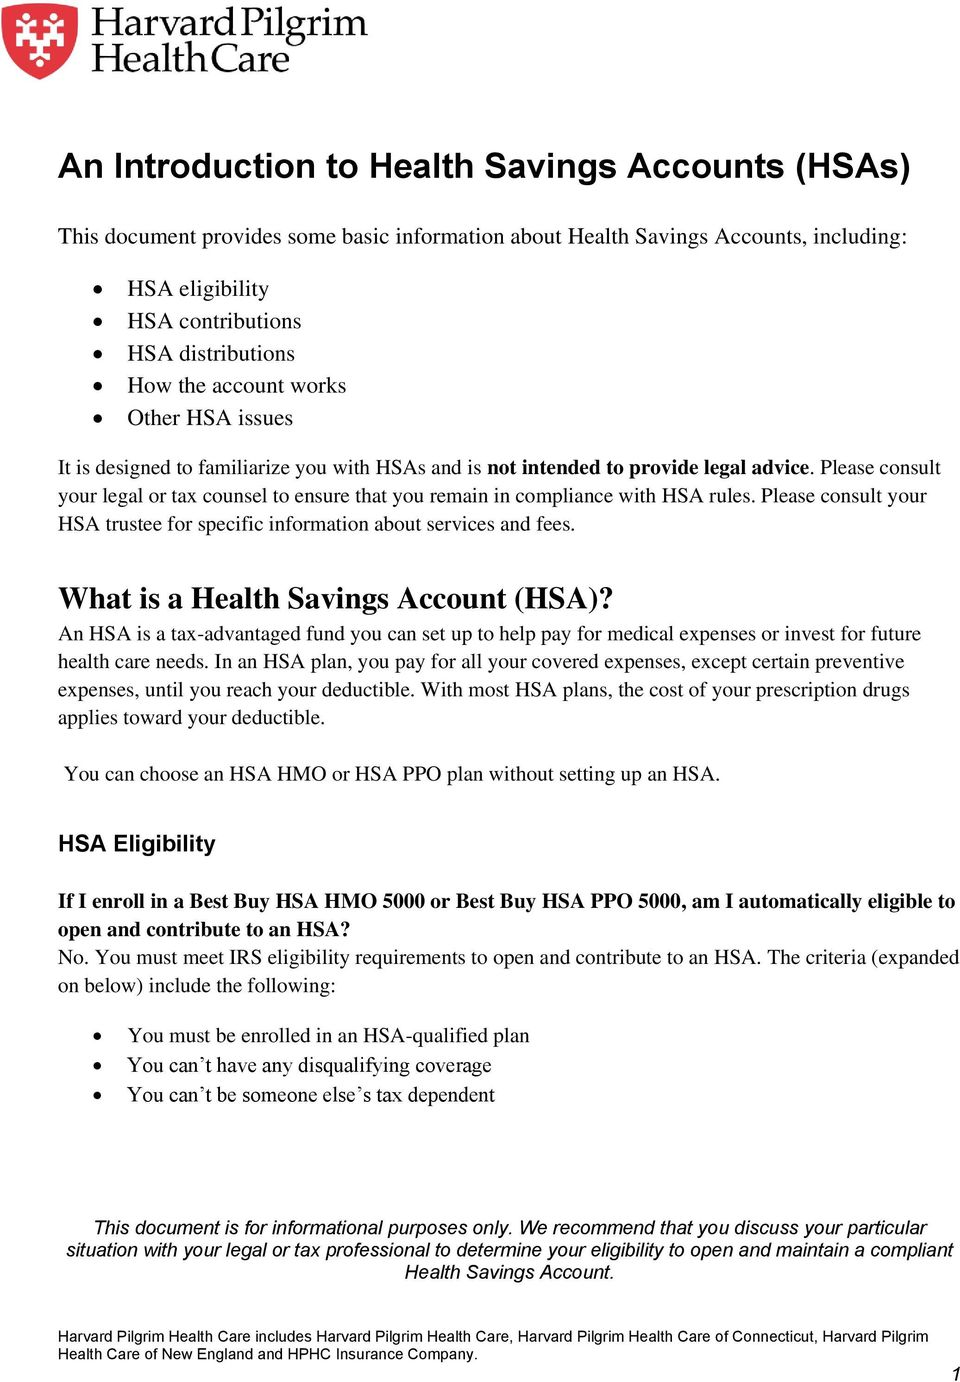 Please consult your legal or tax counsel to ensure that you remain in compliance with HSA rules. Please consult your HSA trustee for specific information about services and fees.